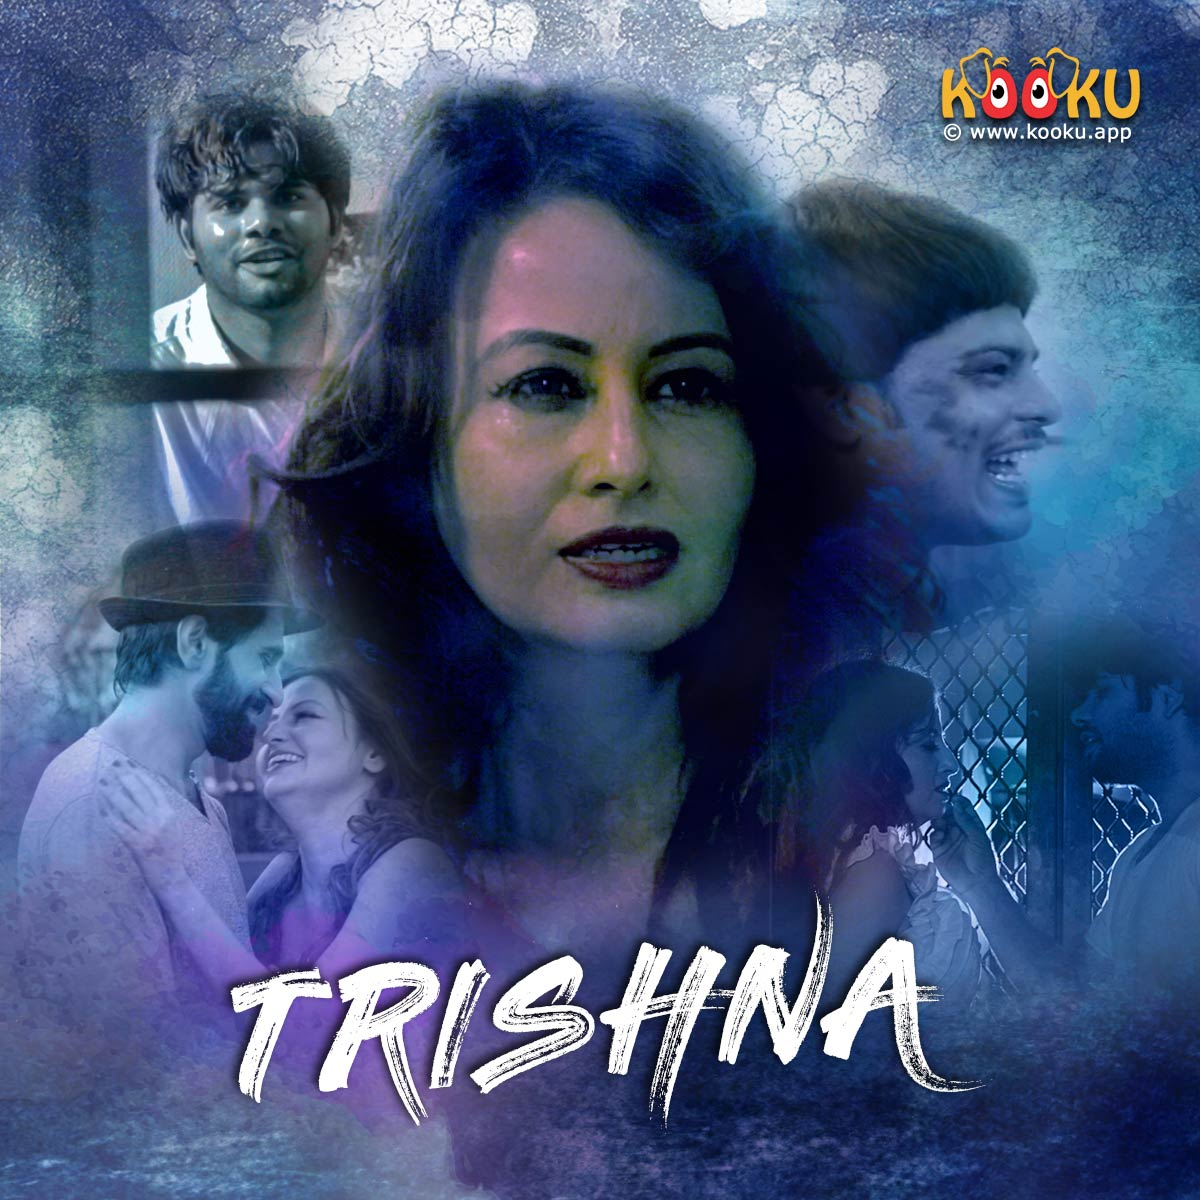 Trishna 2020 S01 Hindi Kooku App Web Series Official Trailer 720p HDRip 30MB Download